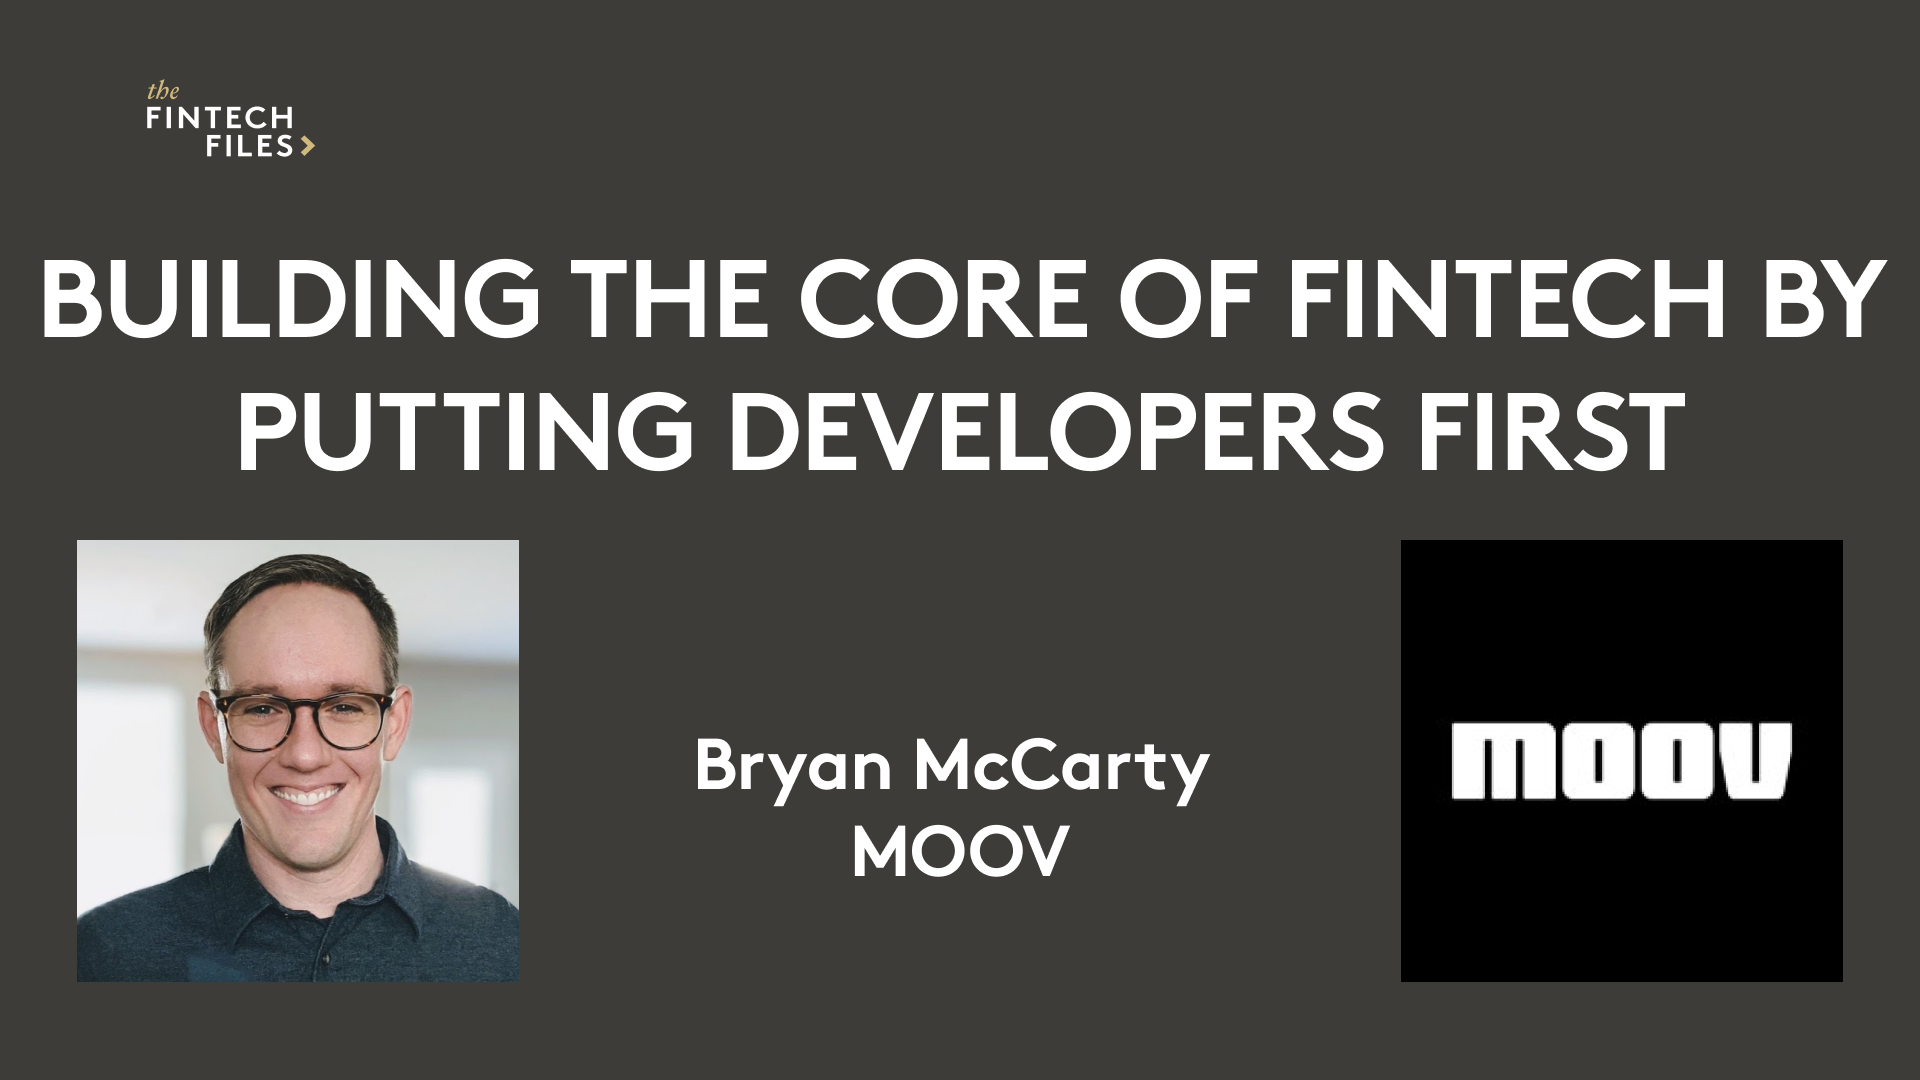 Building The Core of Fintech by Putting Developers First | Bryan McCarty – Moov